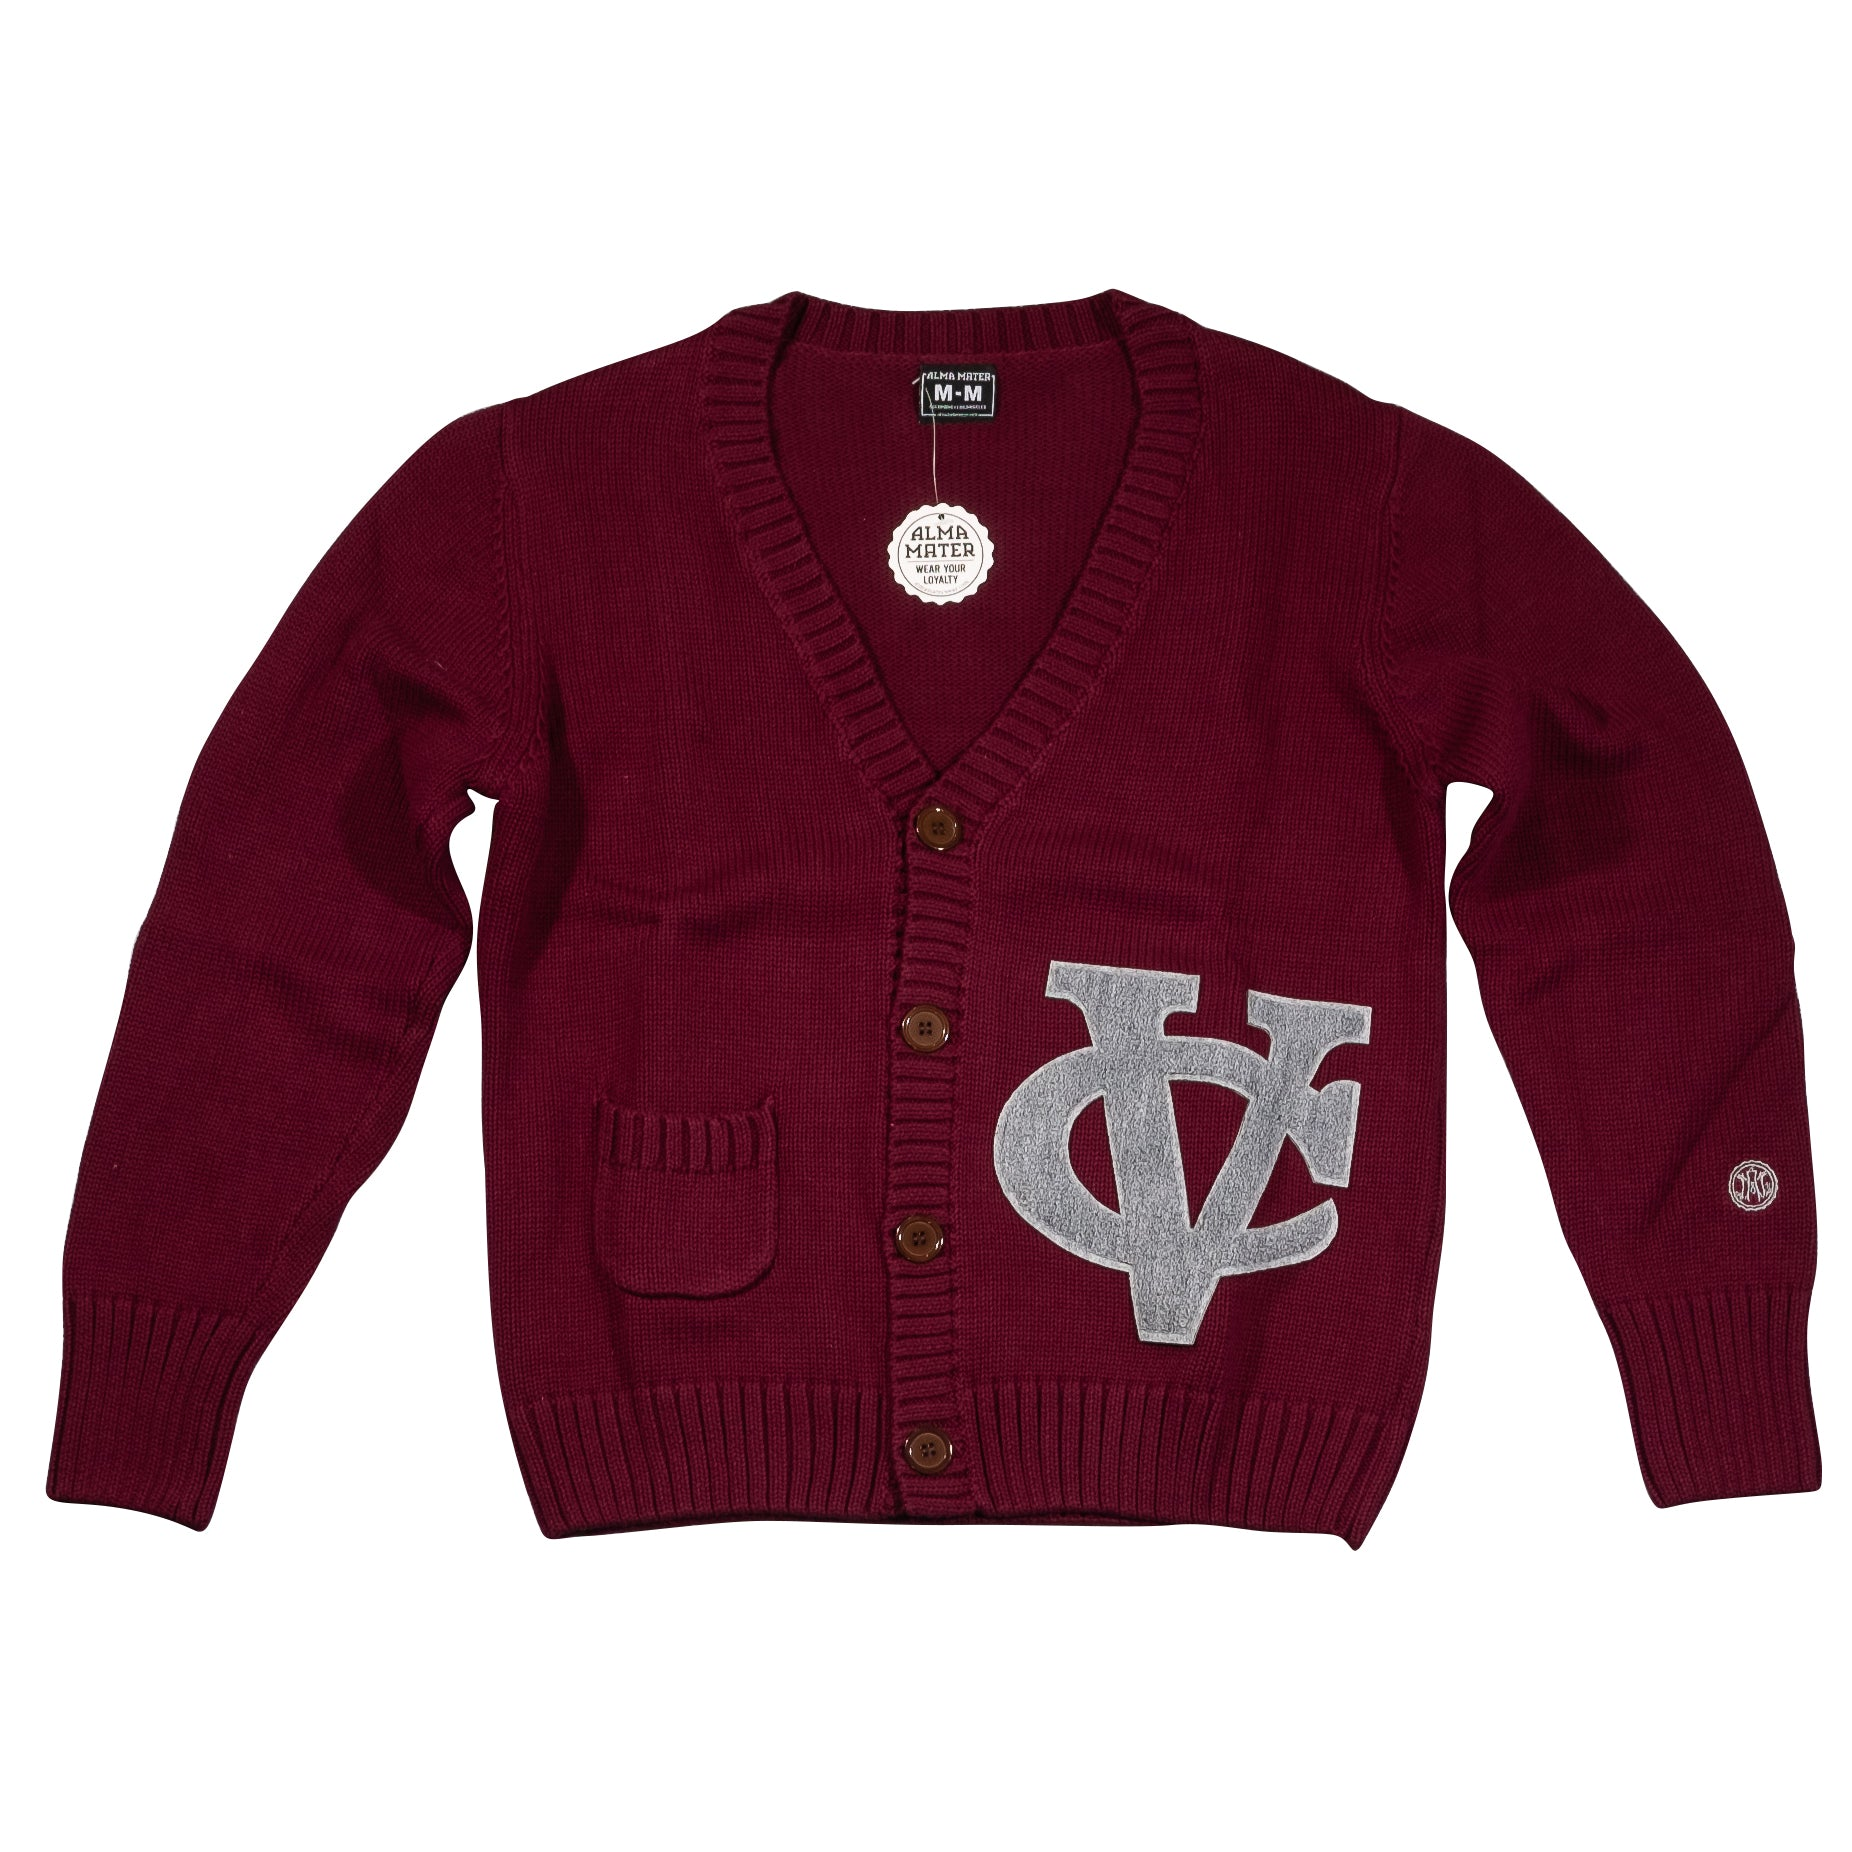 VASSAR COLLEGE Men's Letterman Cardigan